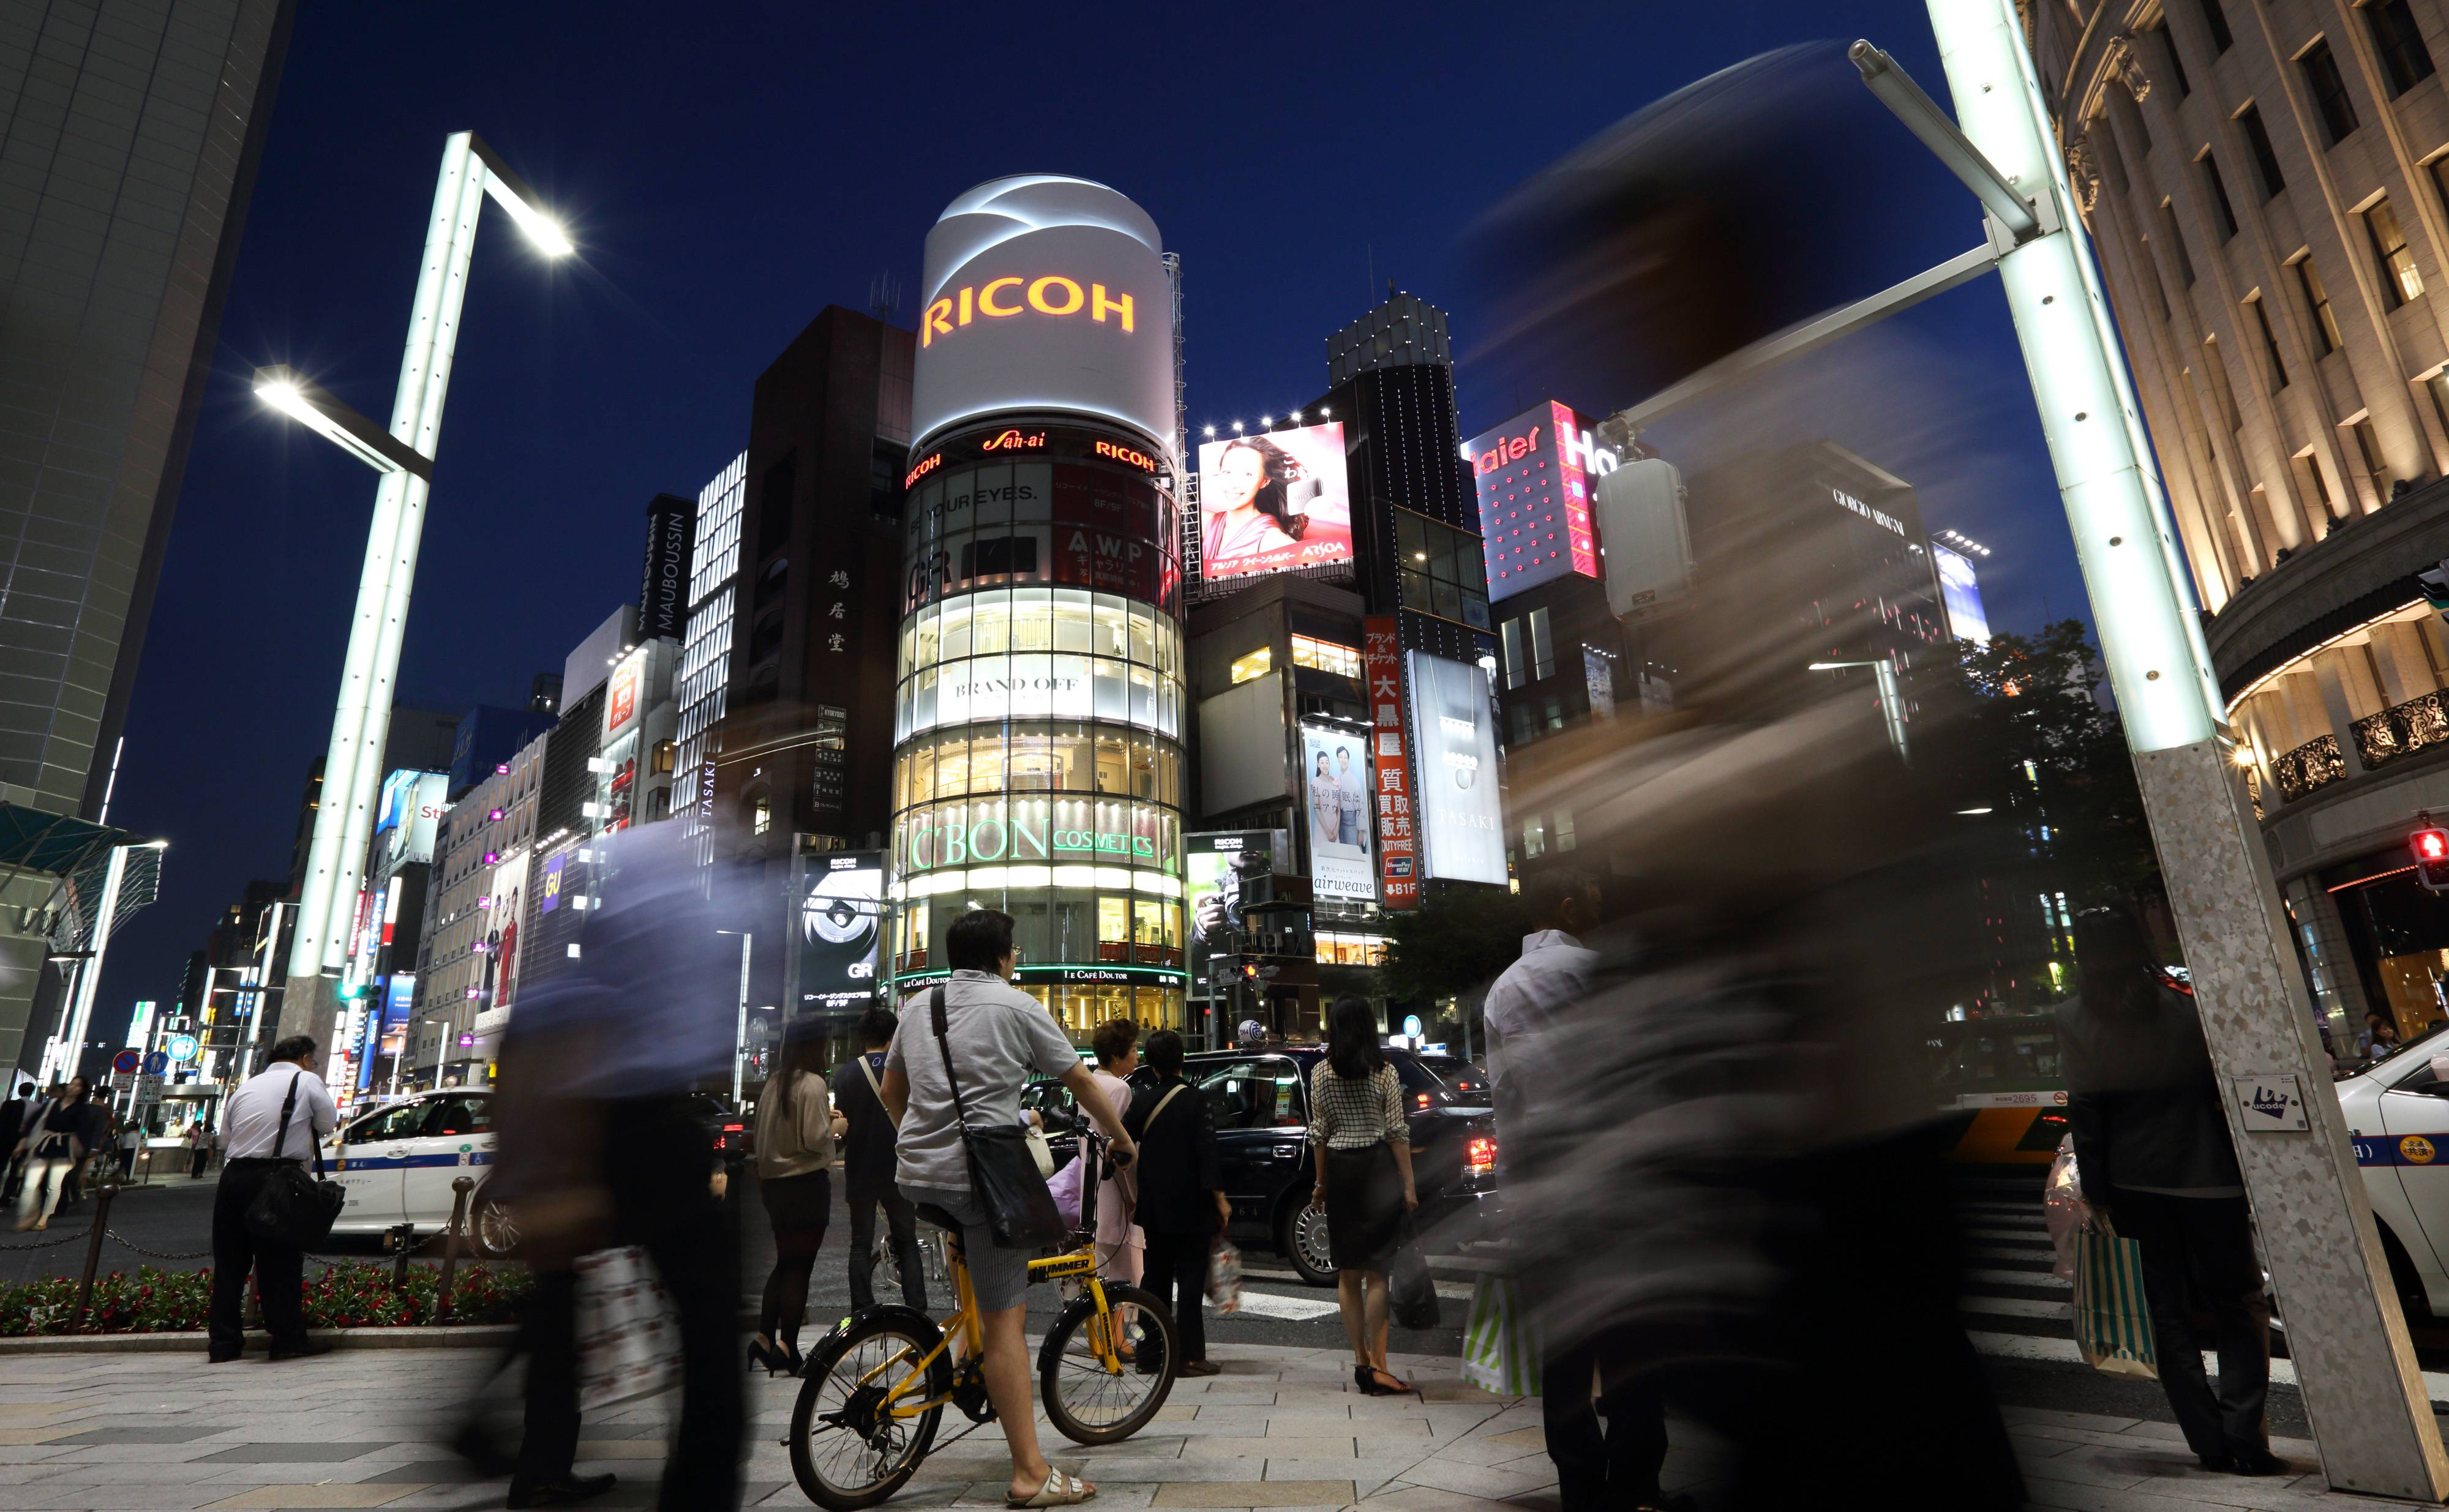 Pedestrians and shoppers wait to cross a road at night in the Ginza district of Tokyo, Japan. Japan's consumer prices rose 3.2 percent from a year earlier in April to the highest level since 1991, the government said Friday, largely due to a sales tax increase that is expected to dent growth this quarter.